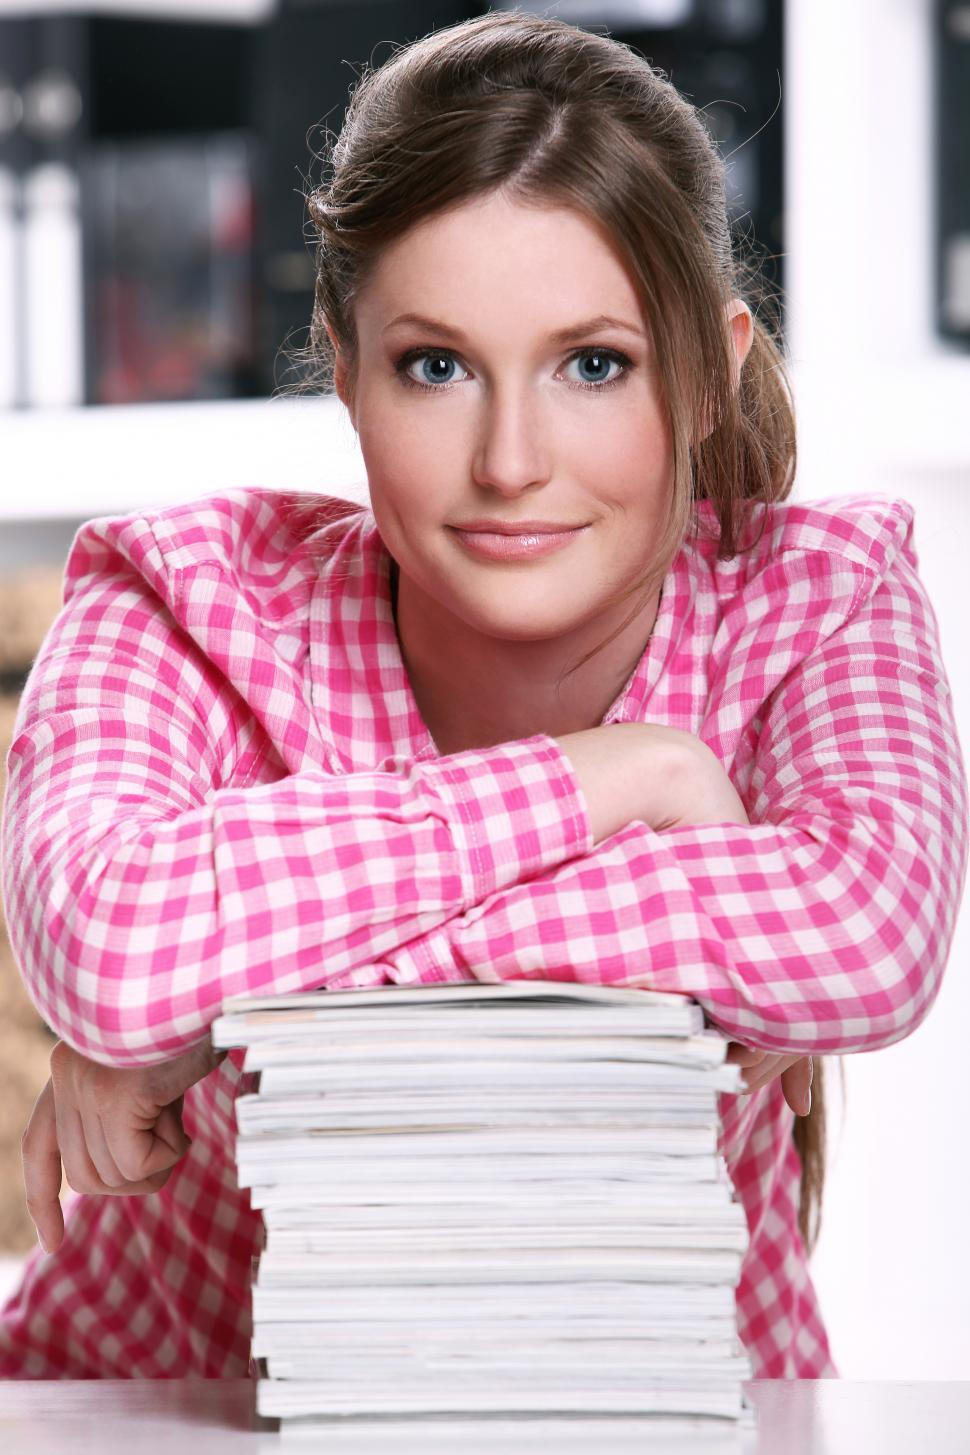 Download Free Stock Photo of Cute student girl at the desk leaning on pile of books